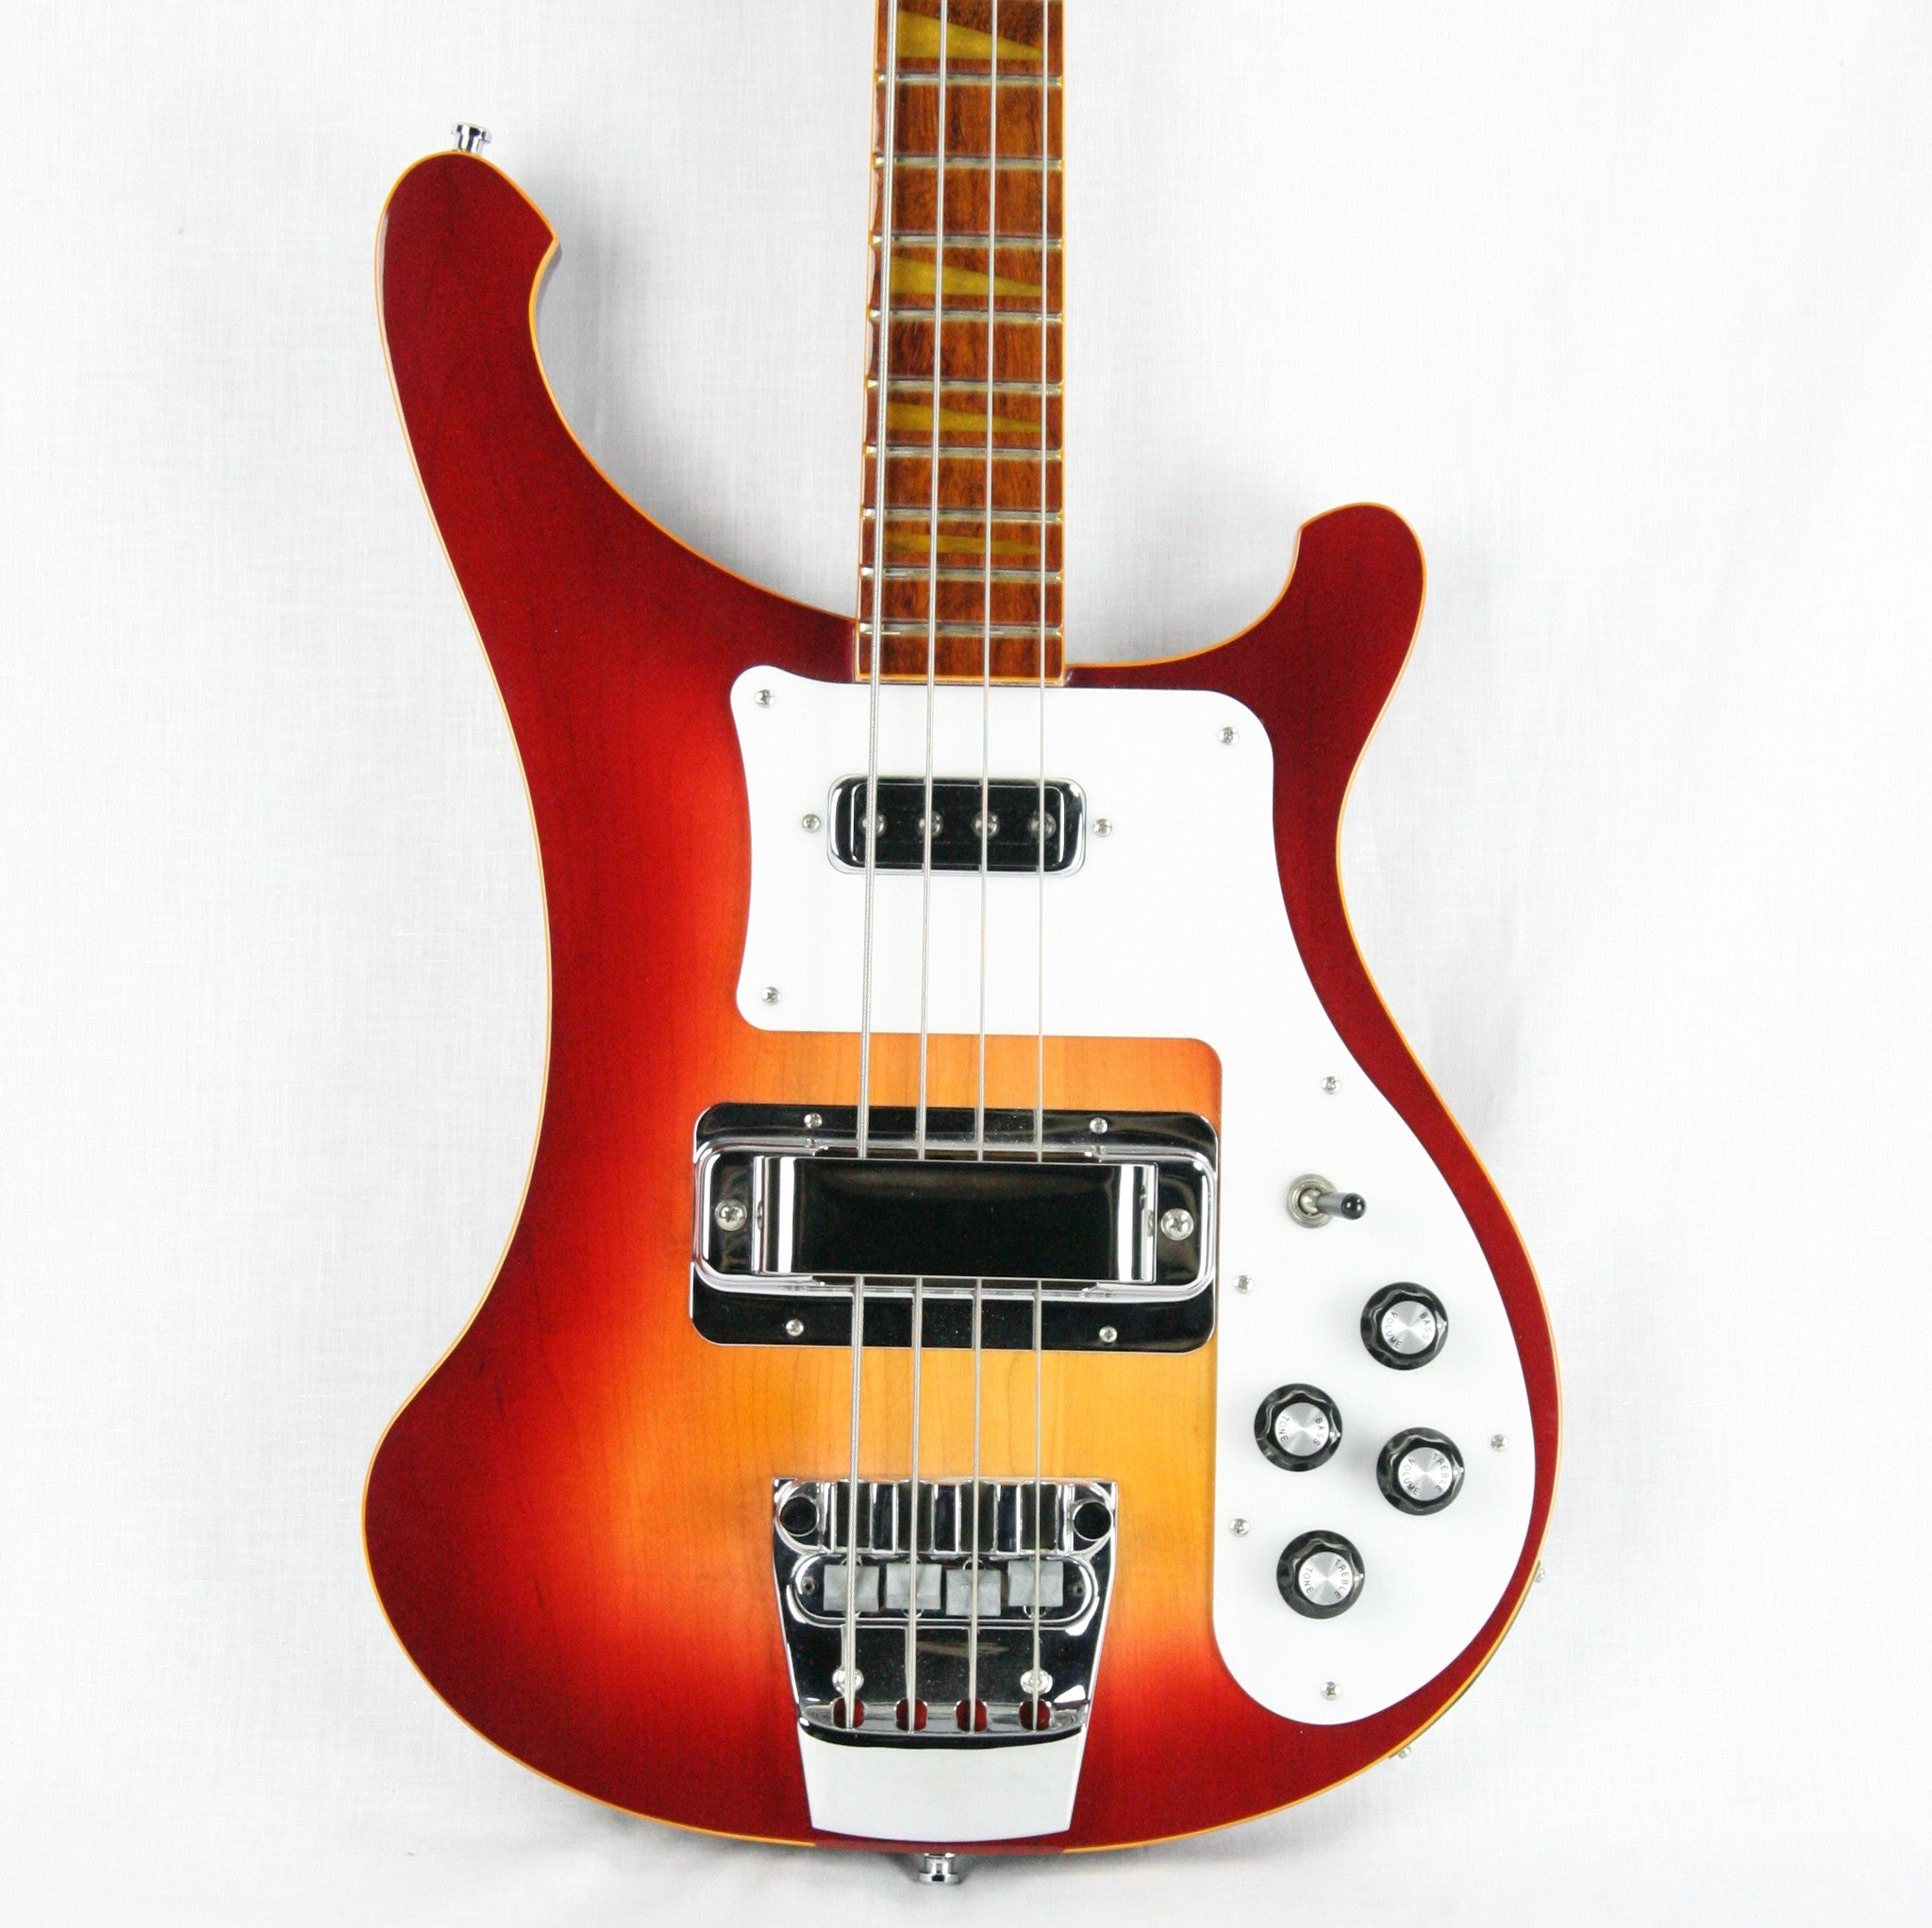 2007 Rickenbacker 4003 AFG Color of the Year Amber Fireglo Bass Guitar! Rare Limited Edition Color!